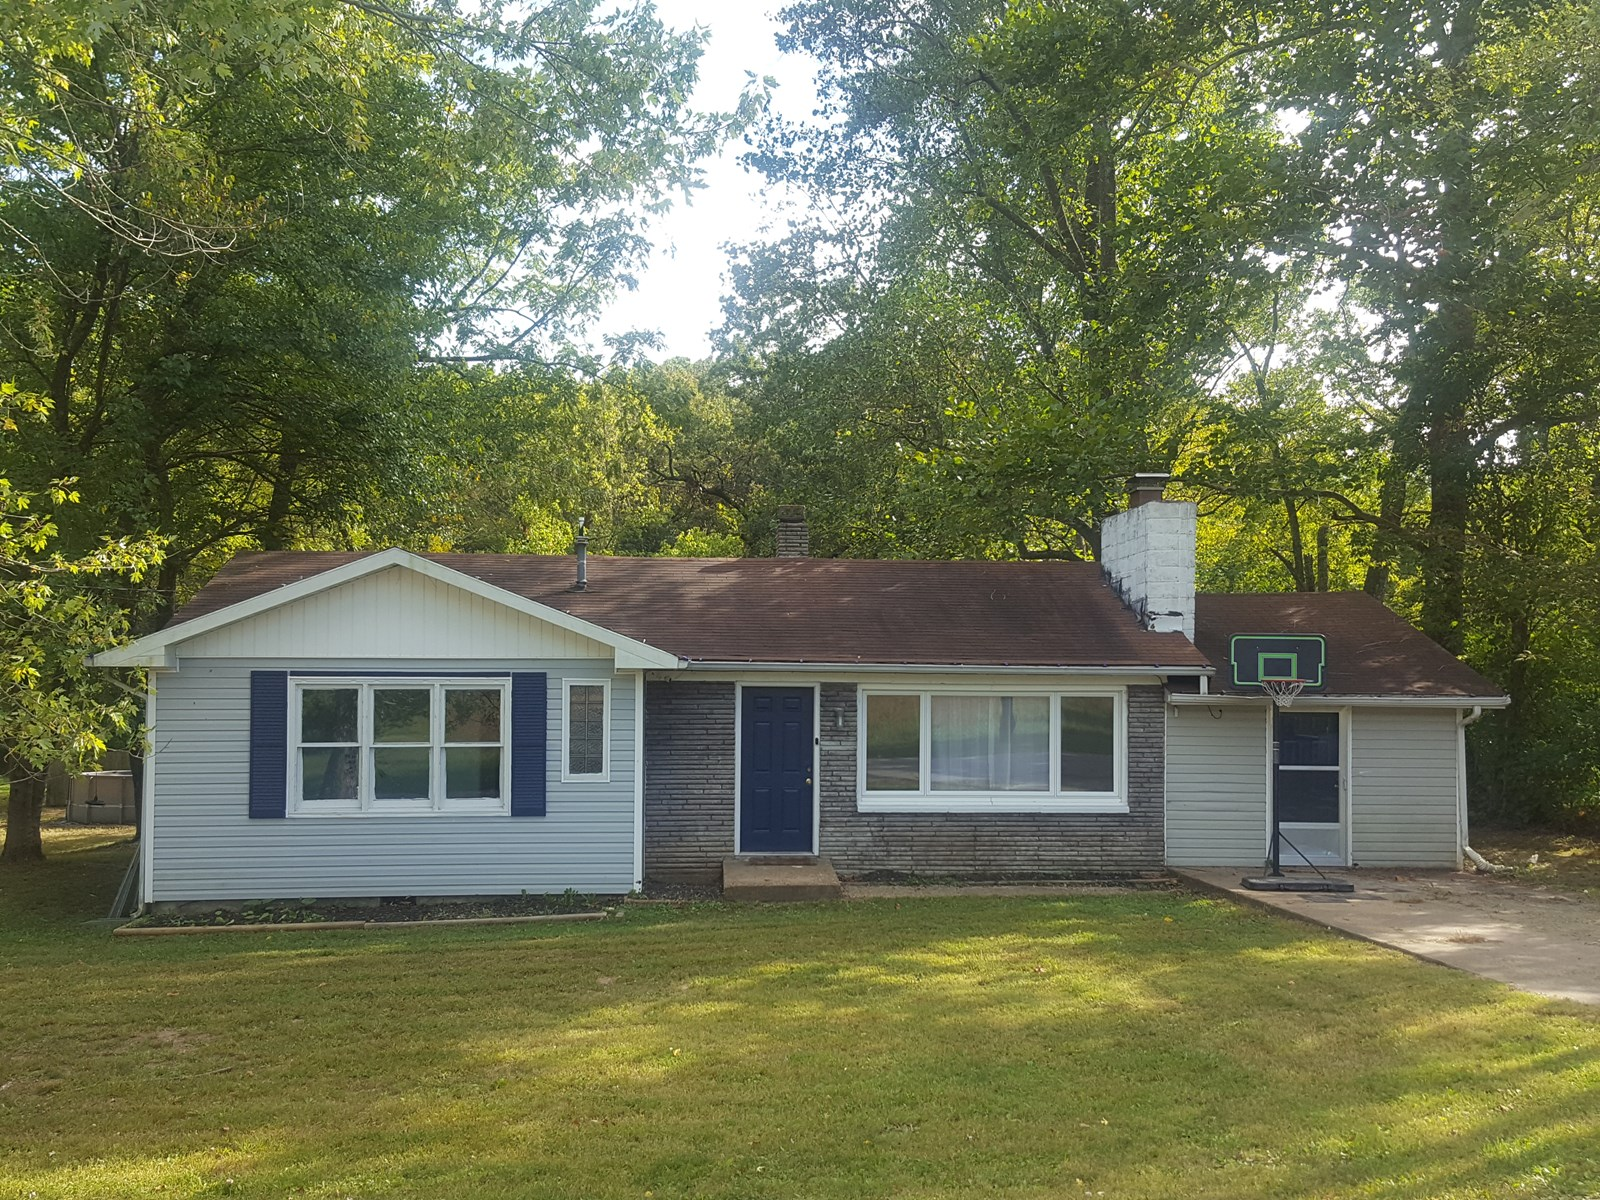 House for Sale in South Central Missouri Ozarks Small Town